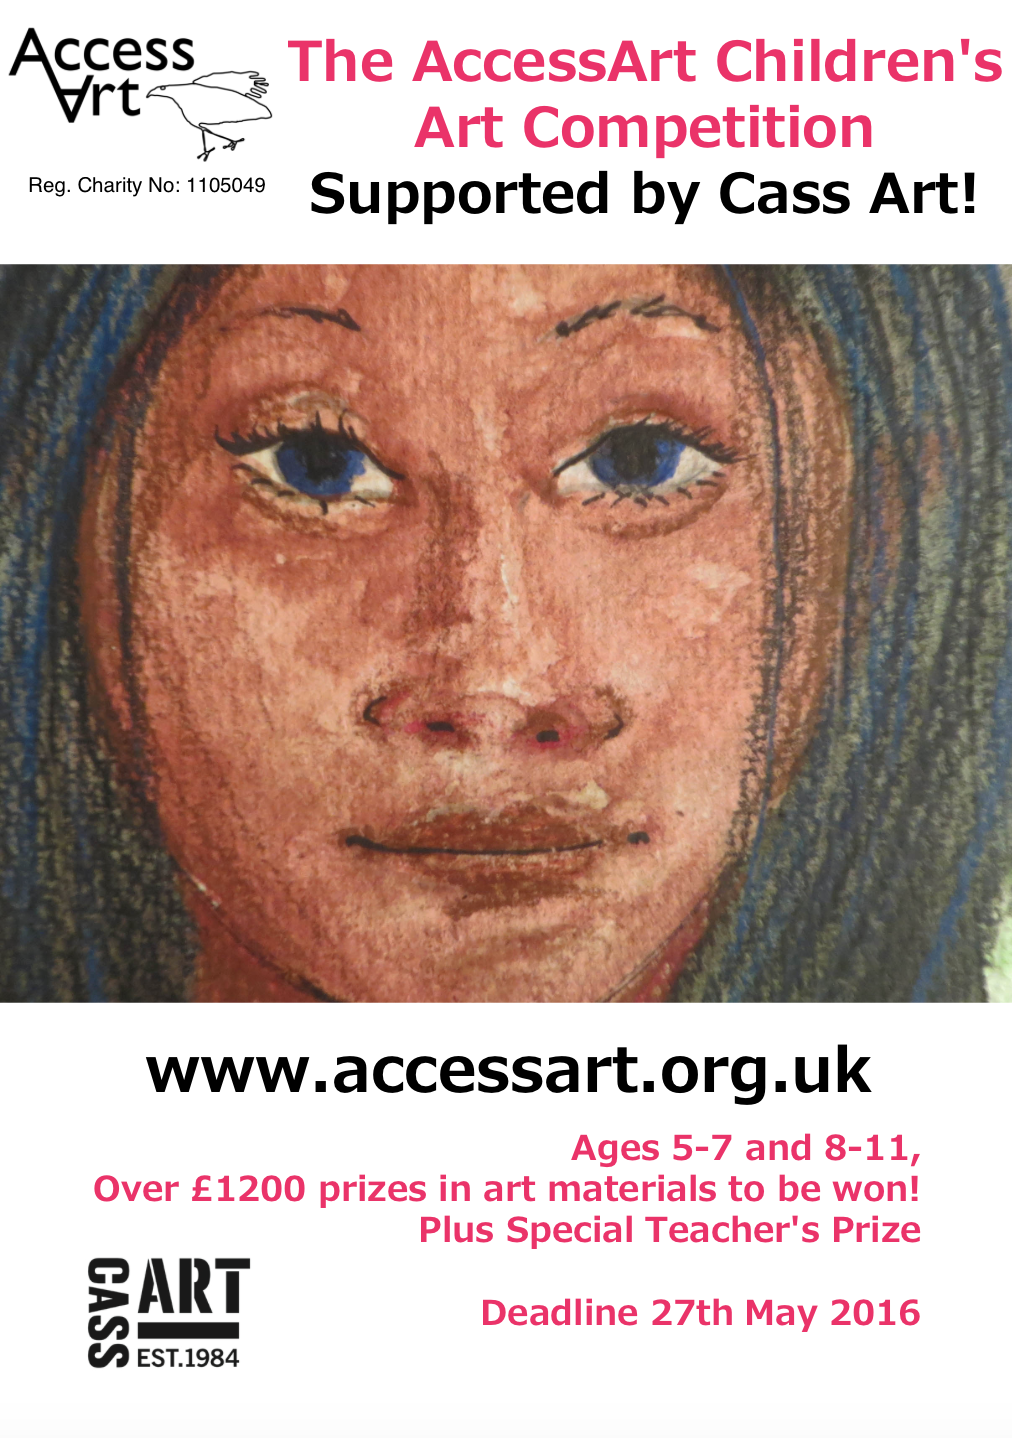 The AccessArt Children's Art Competition, Supported by Cass Art